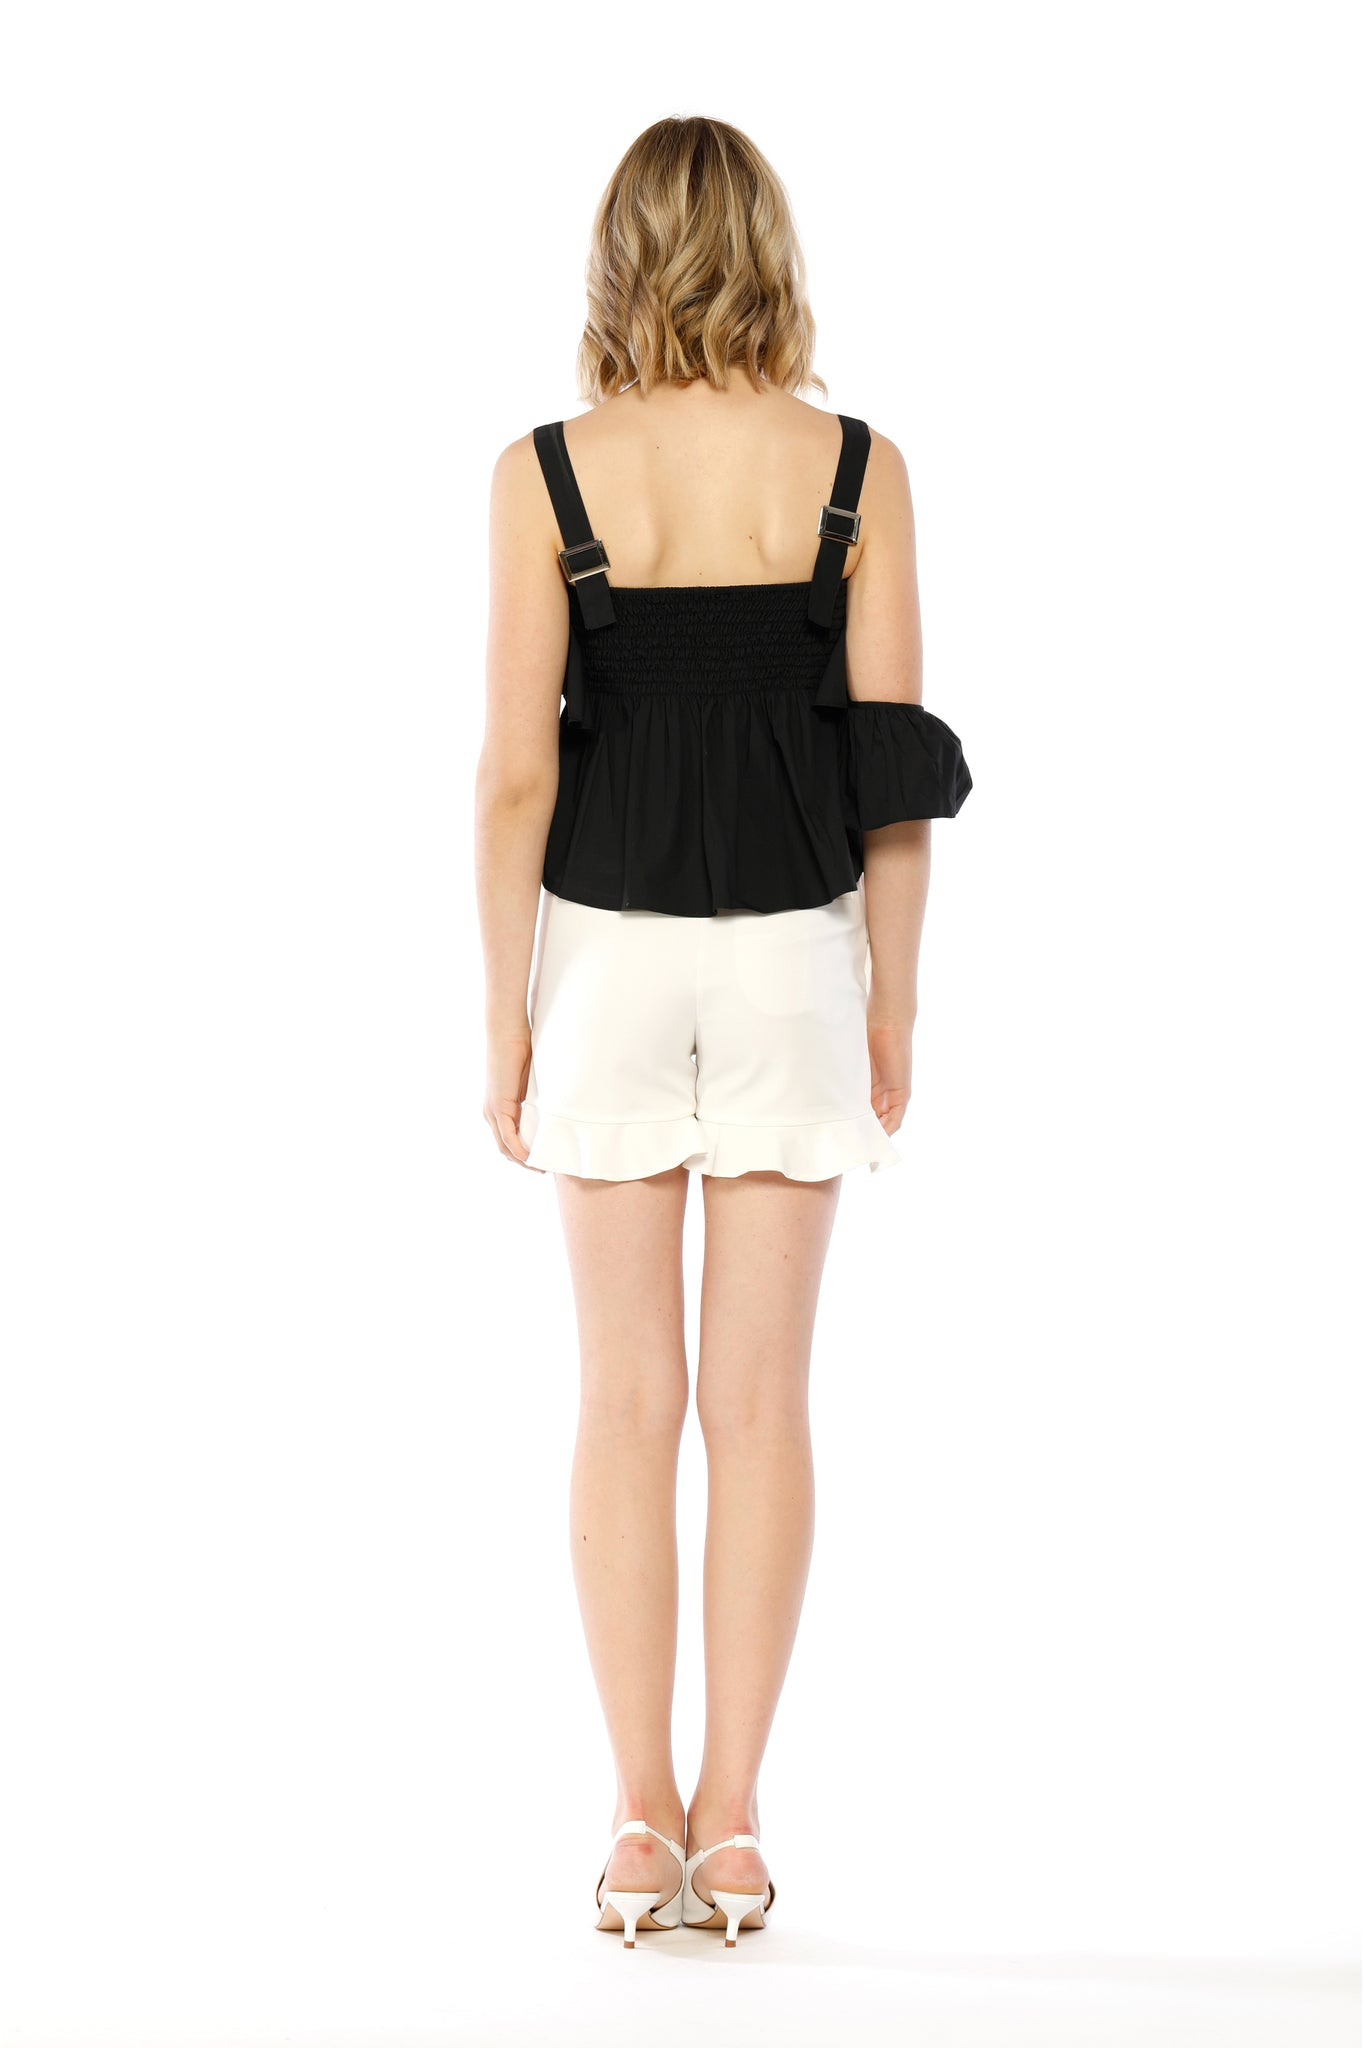 Back view of Kim Top, black adjustable strap tank top with ruffled collar, flowing side frill, and one batwing sleeve. 100% Cotton and Machine-washable.